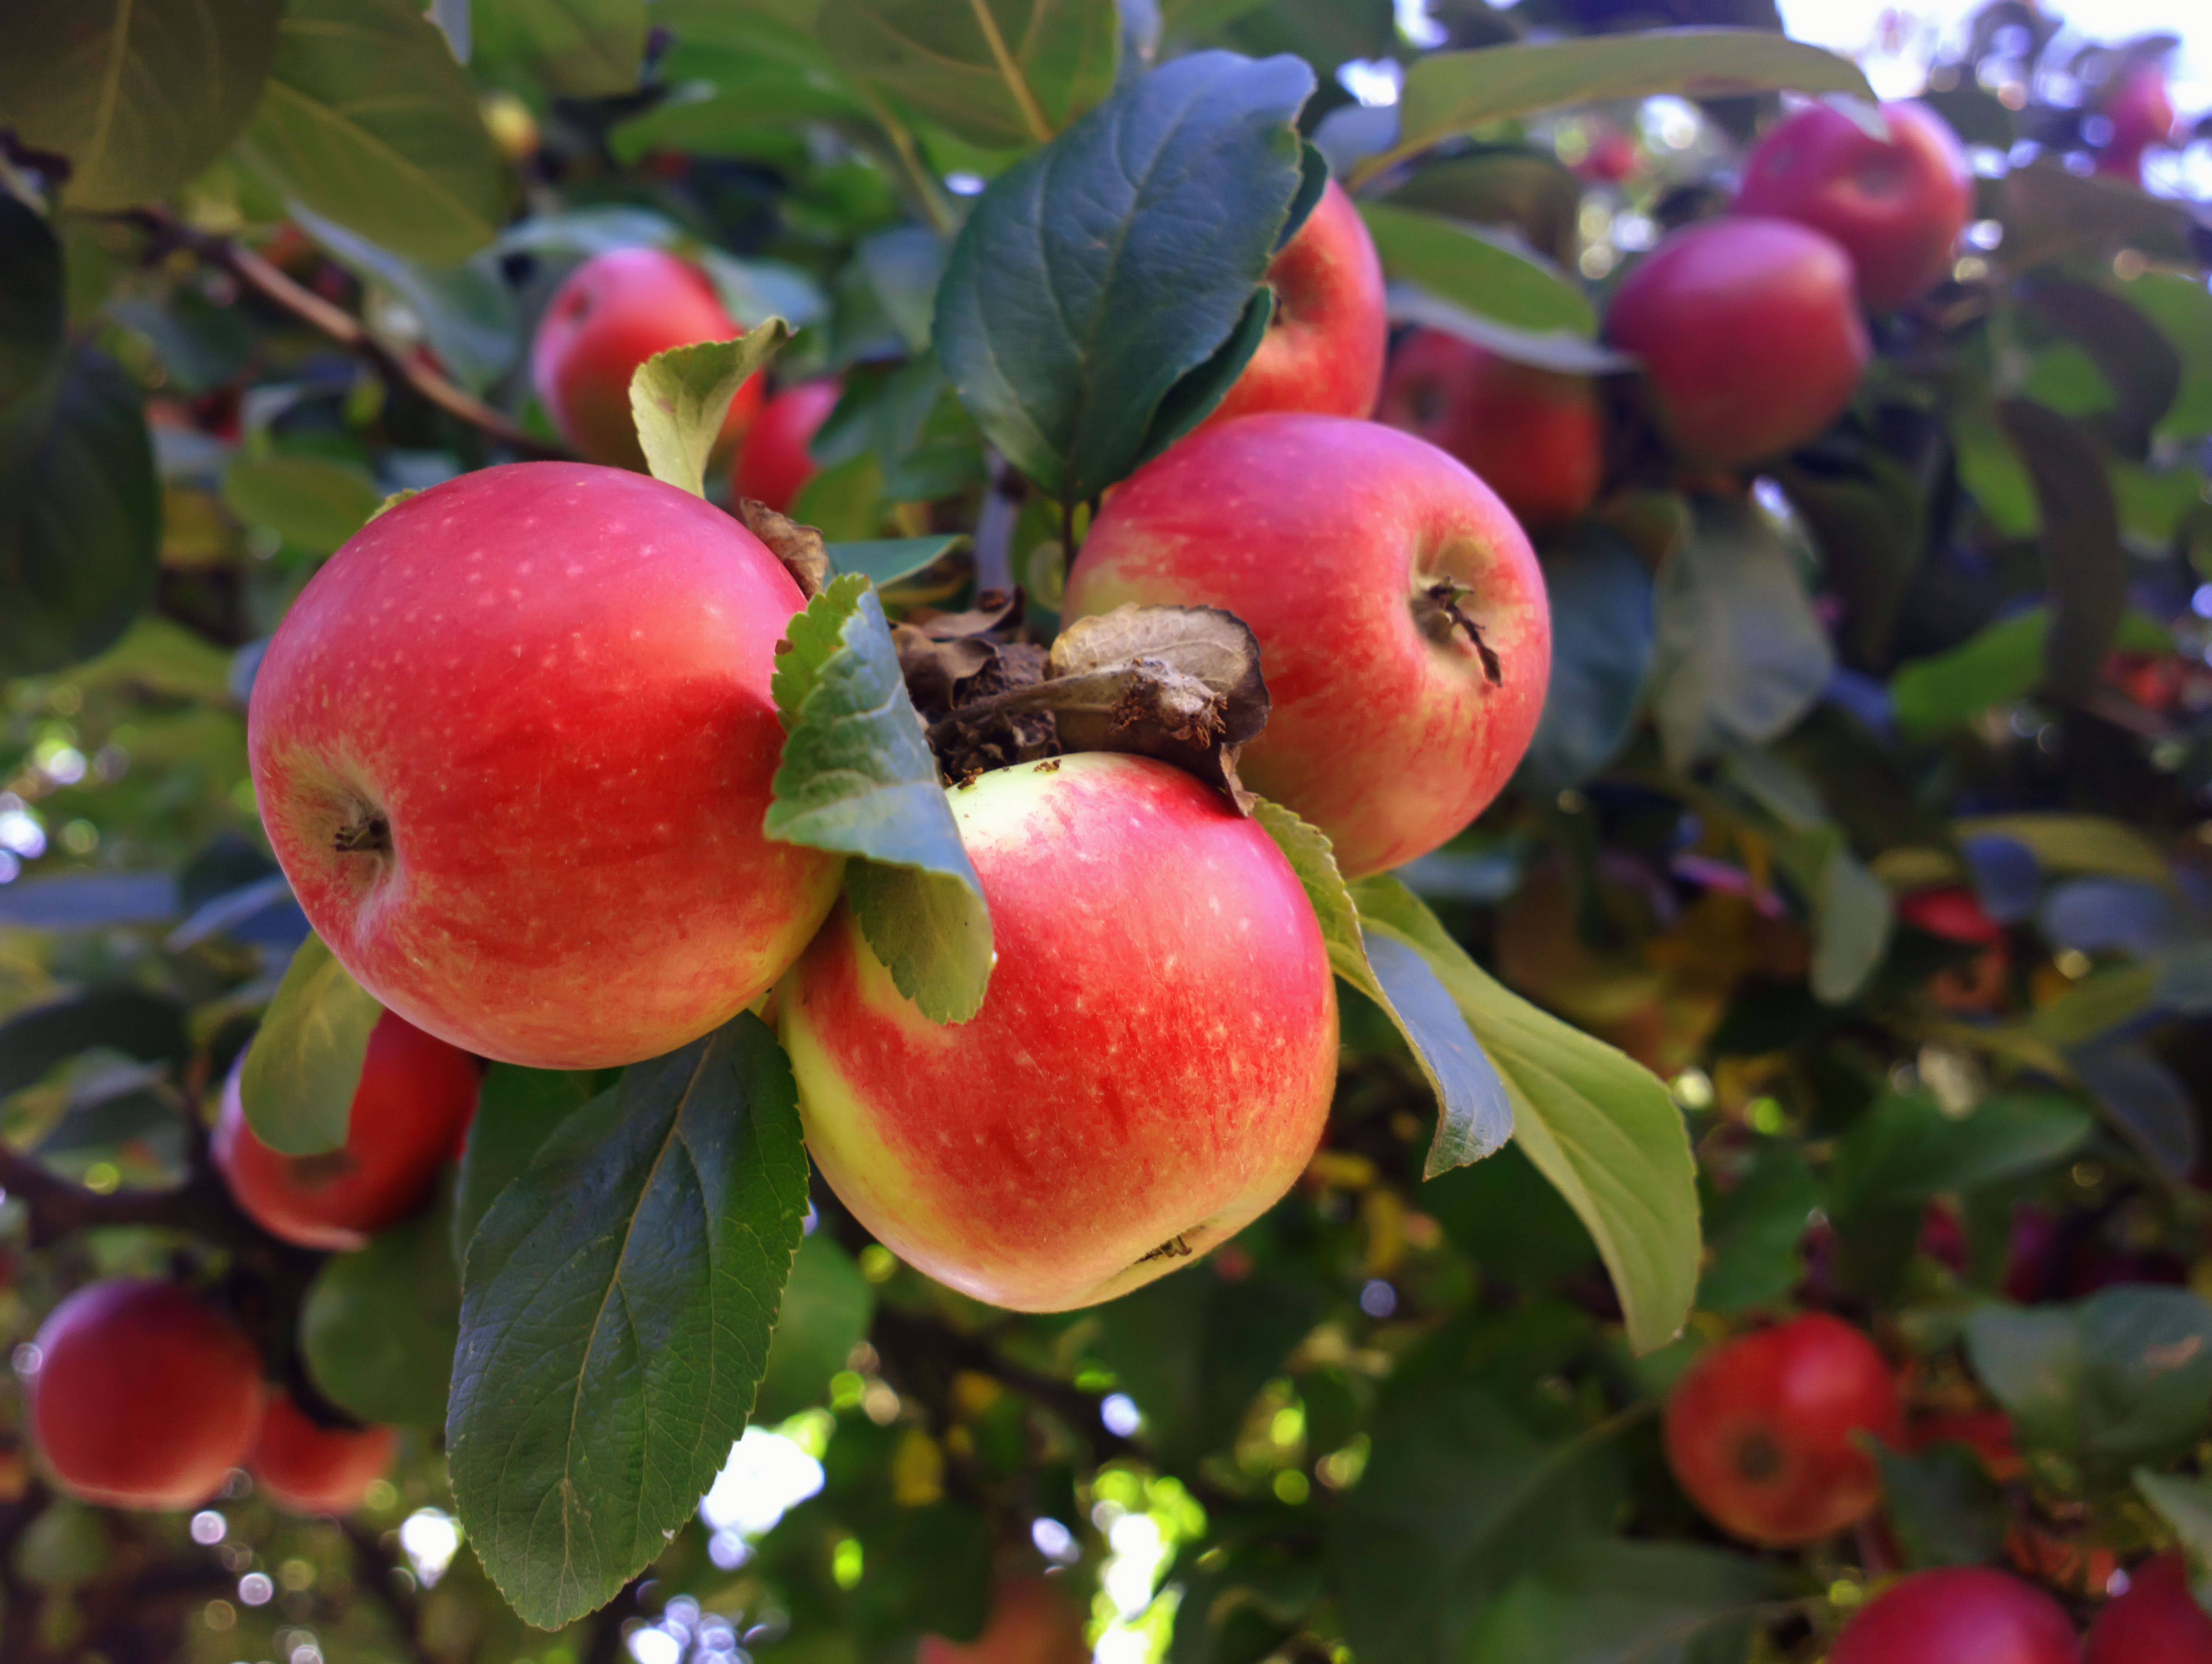 How To Grow An Apple Tree From A Cutting Home Guides Sf Gate